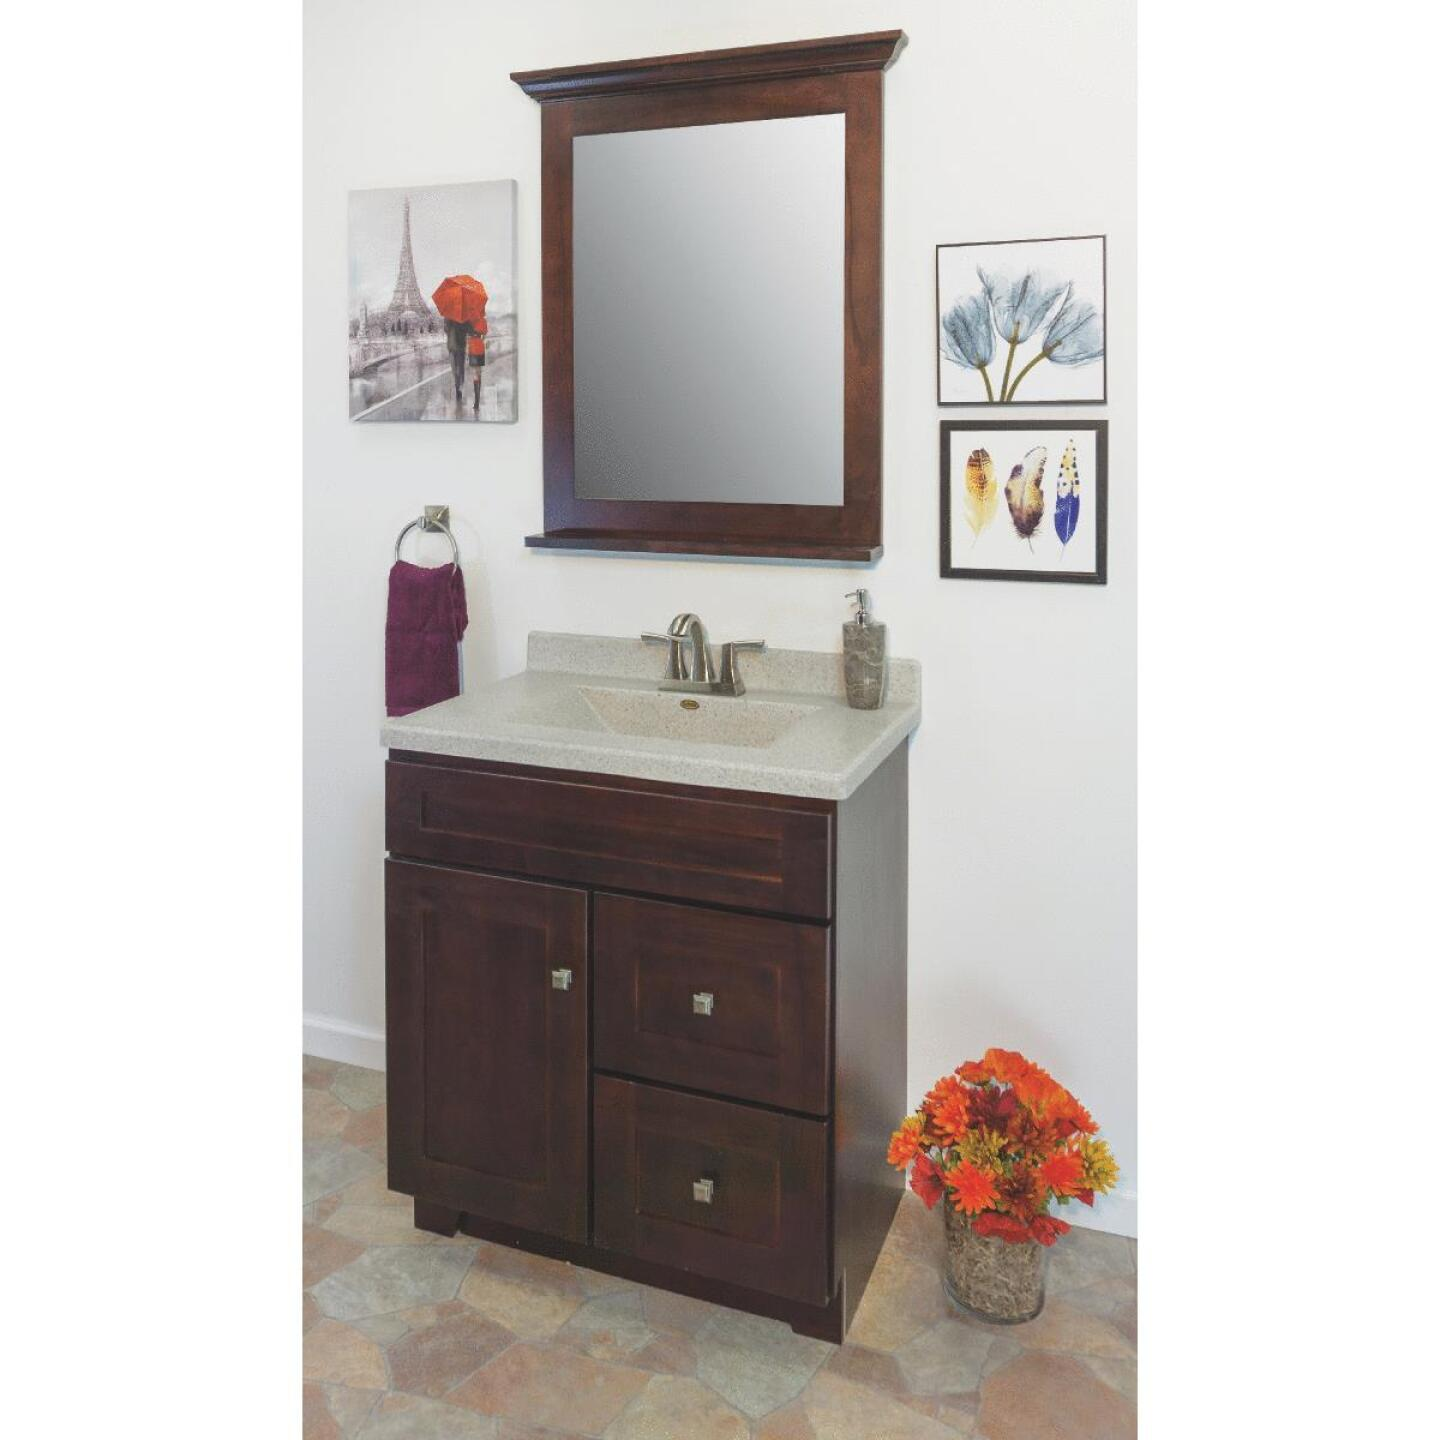 CraftMark CherryVale Shaker Cherry 30 In. W x 34 In. H x 21 In. D Vanity Base, 1 Door/2 Drawer Image 6